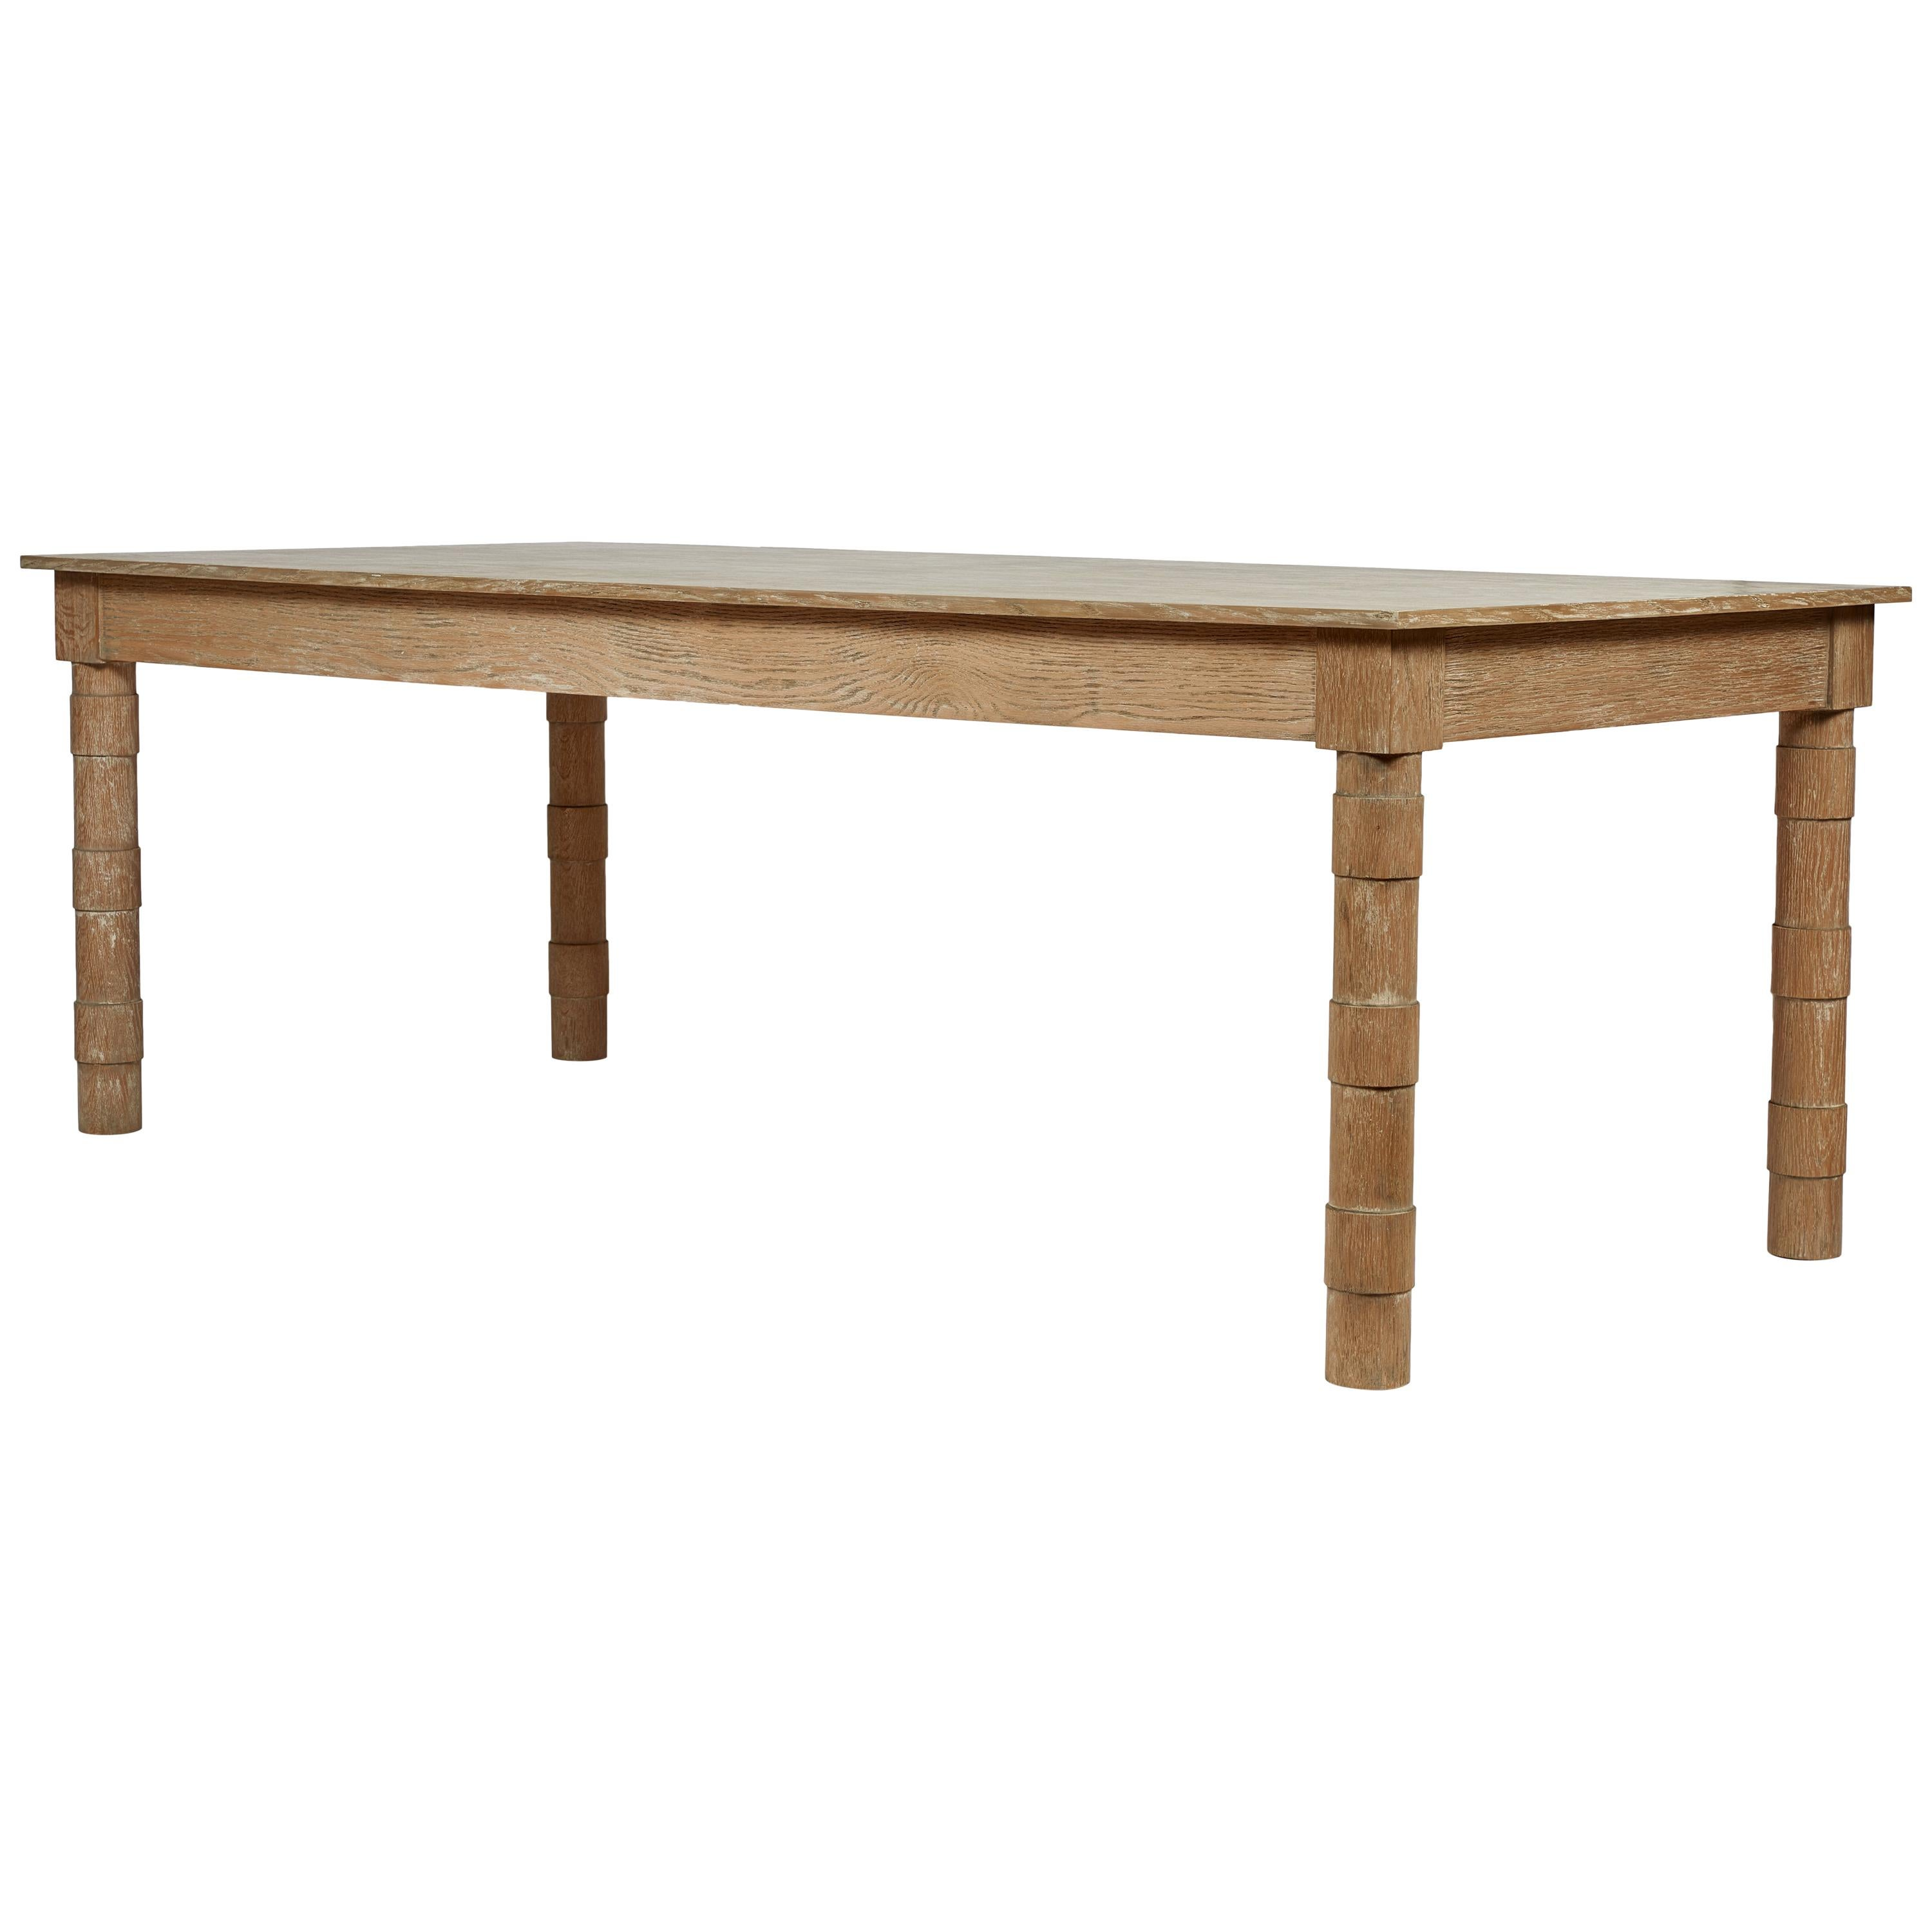 Transitional Turned Leg Dining Table in Cerused Oak by Martin and Brockett Brown